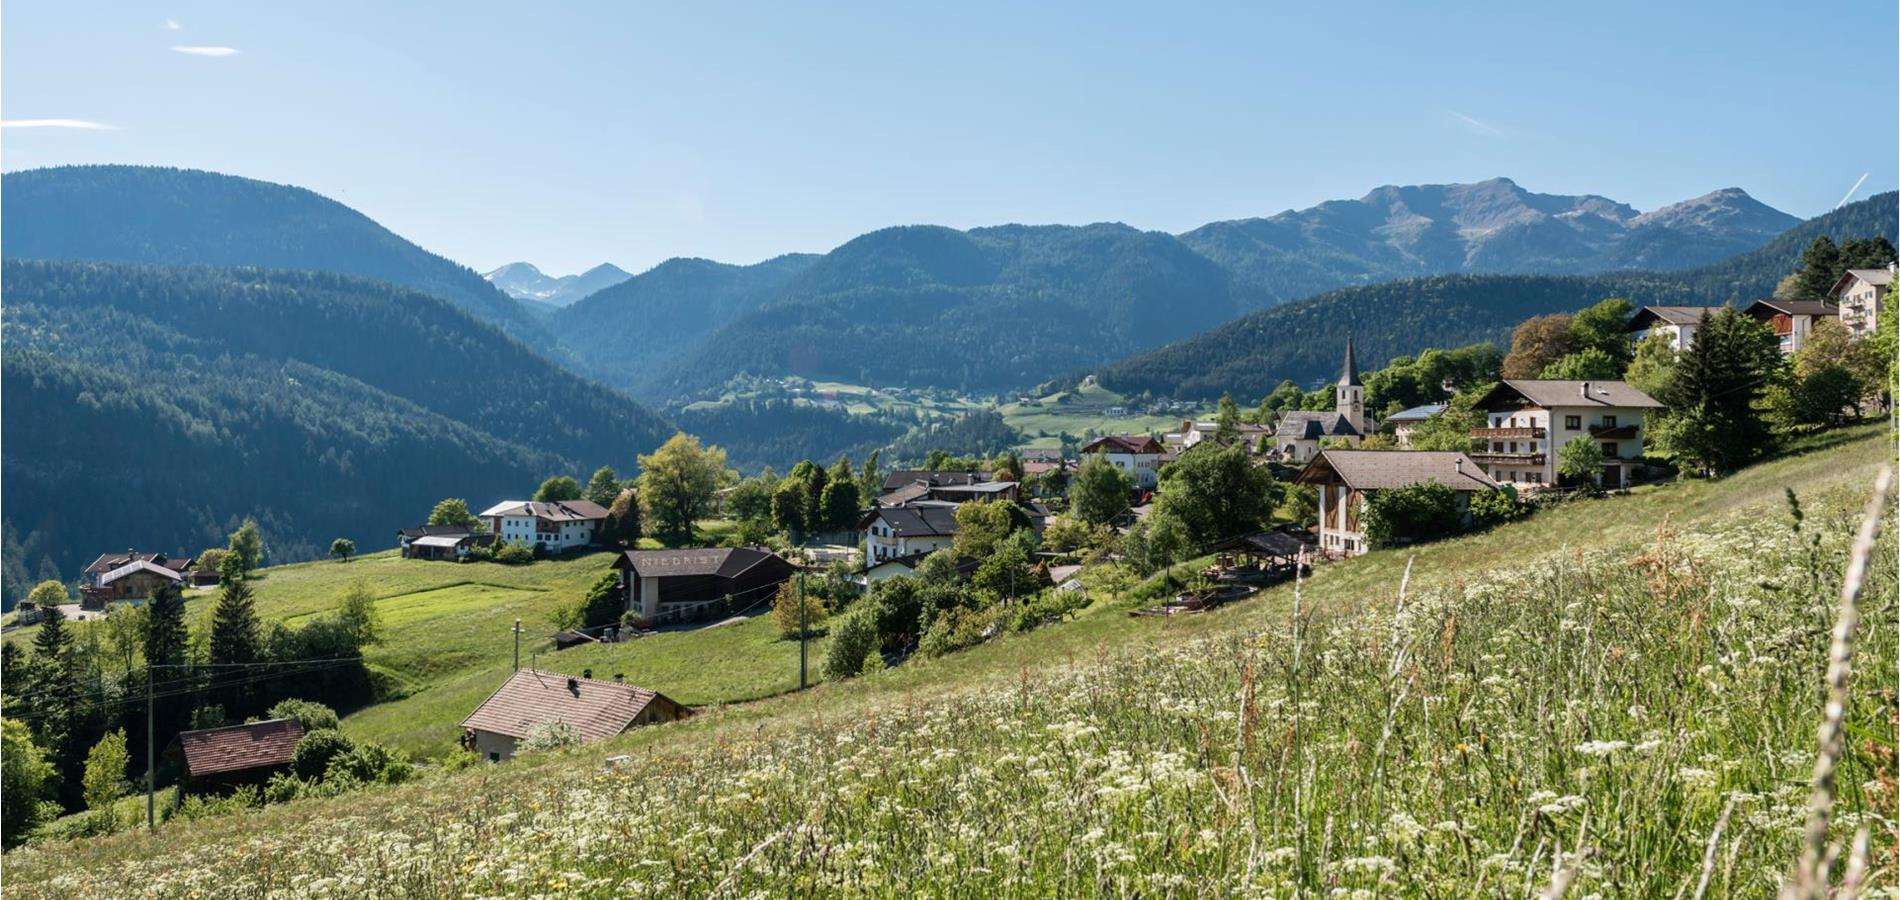 Deutschnonsberg – The Crossroads between South Tyrol and Trentino